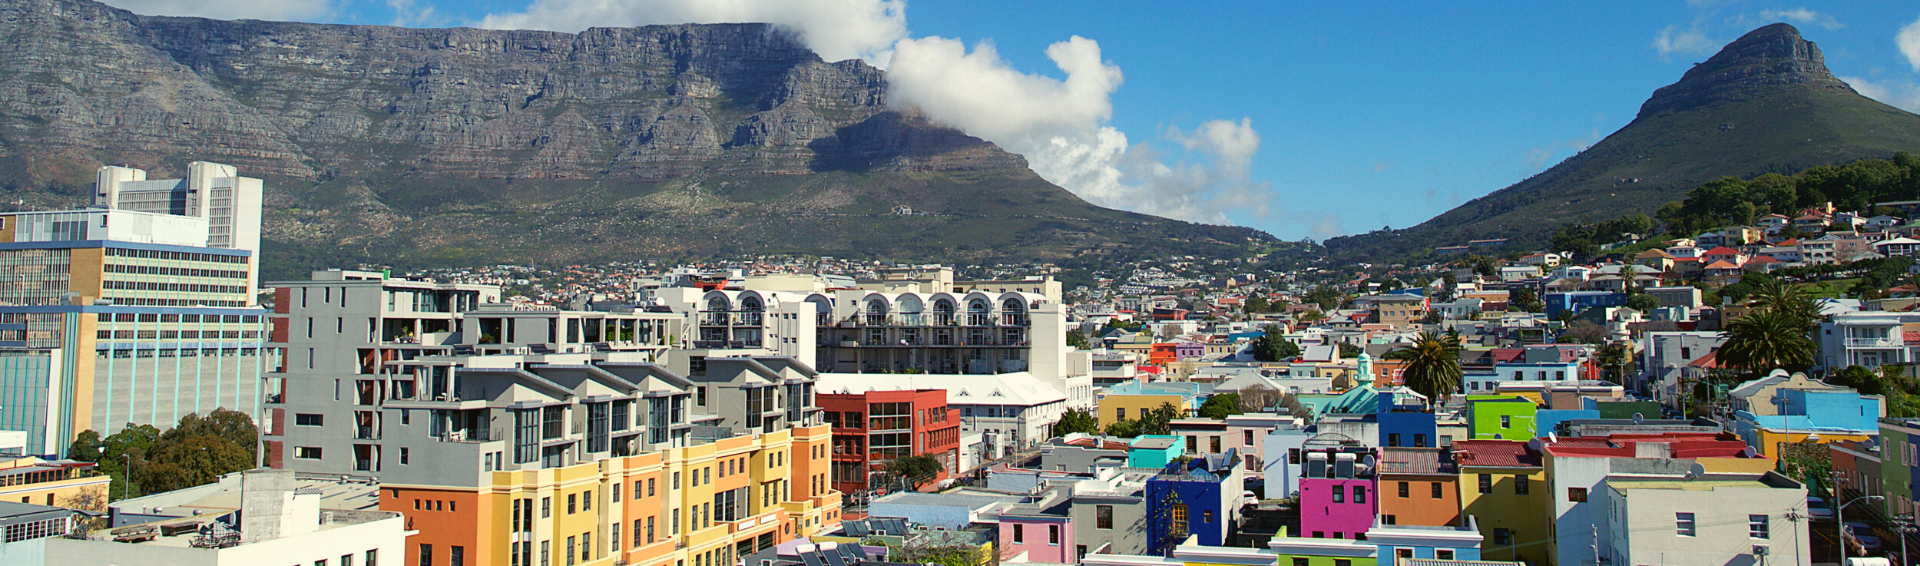 Colourful heritage site - Bo-Kaap, with Signal Hill and Table Mountain